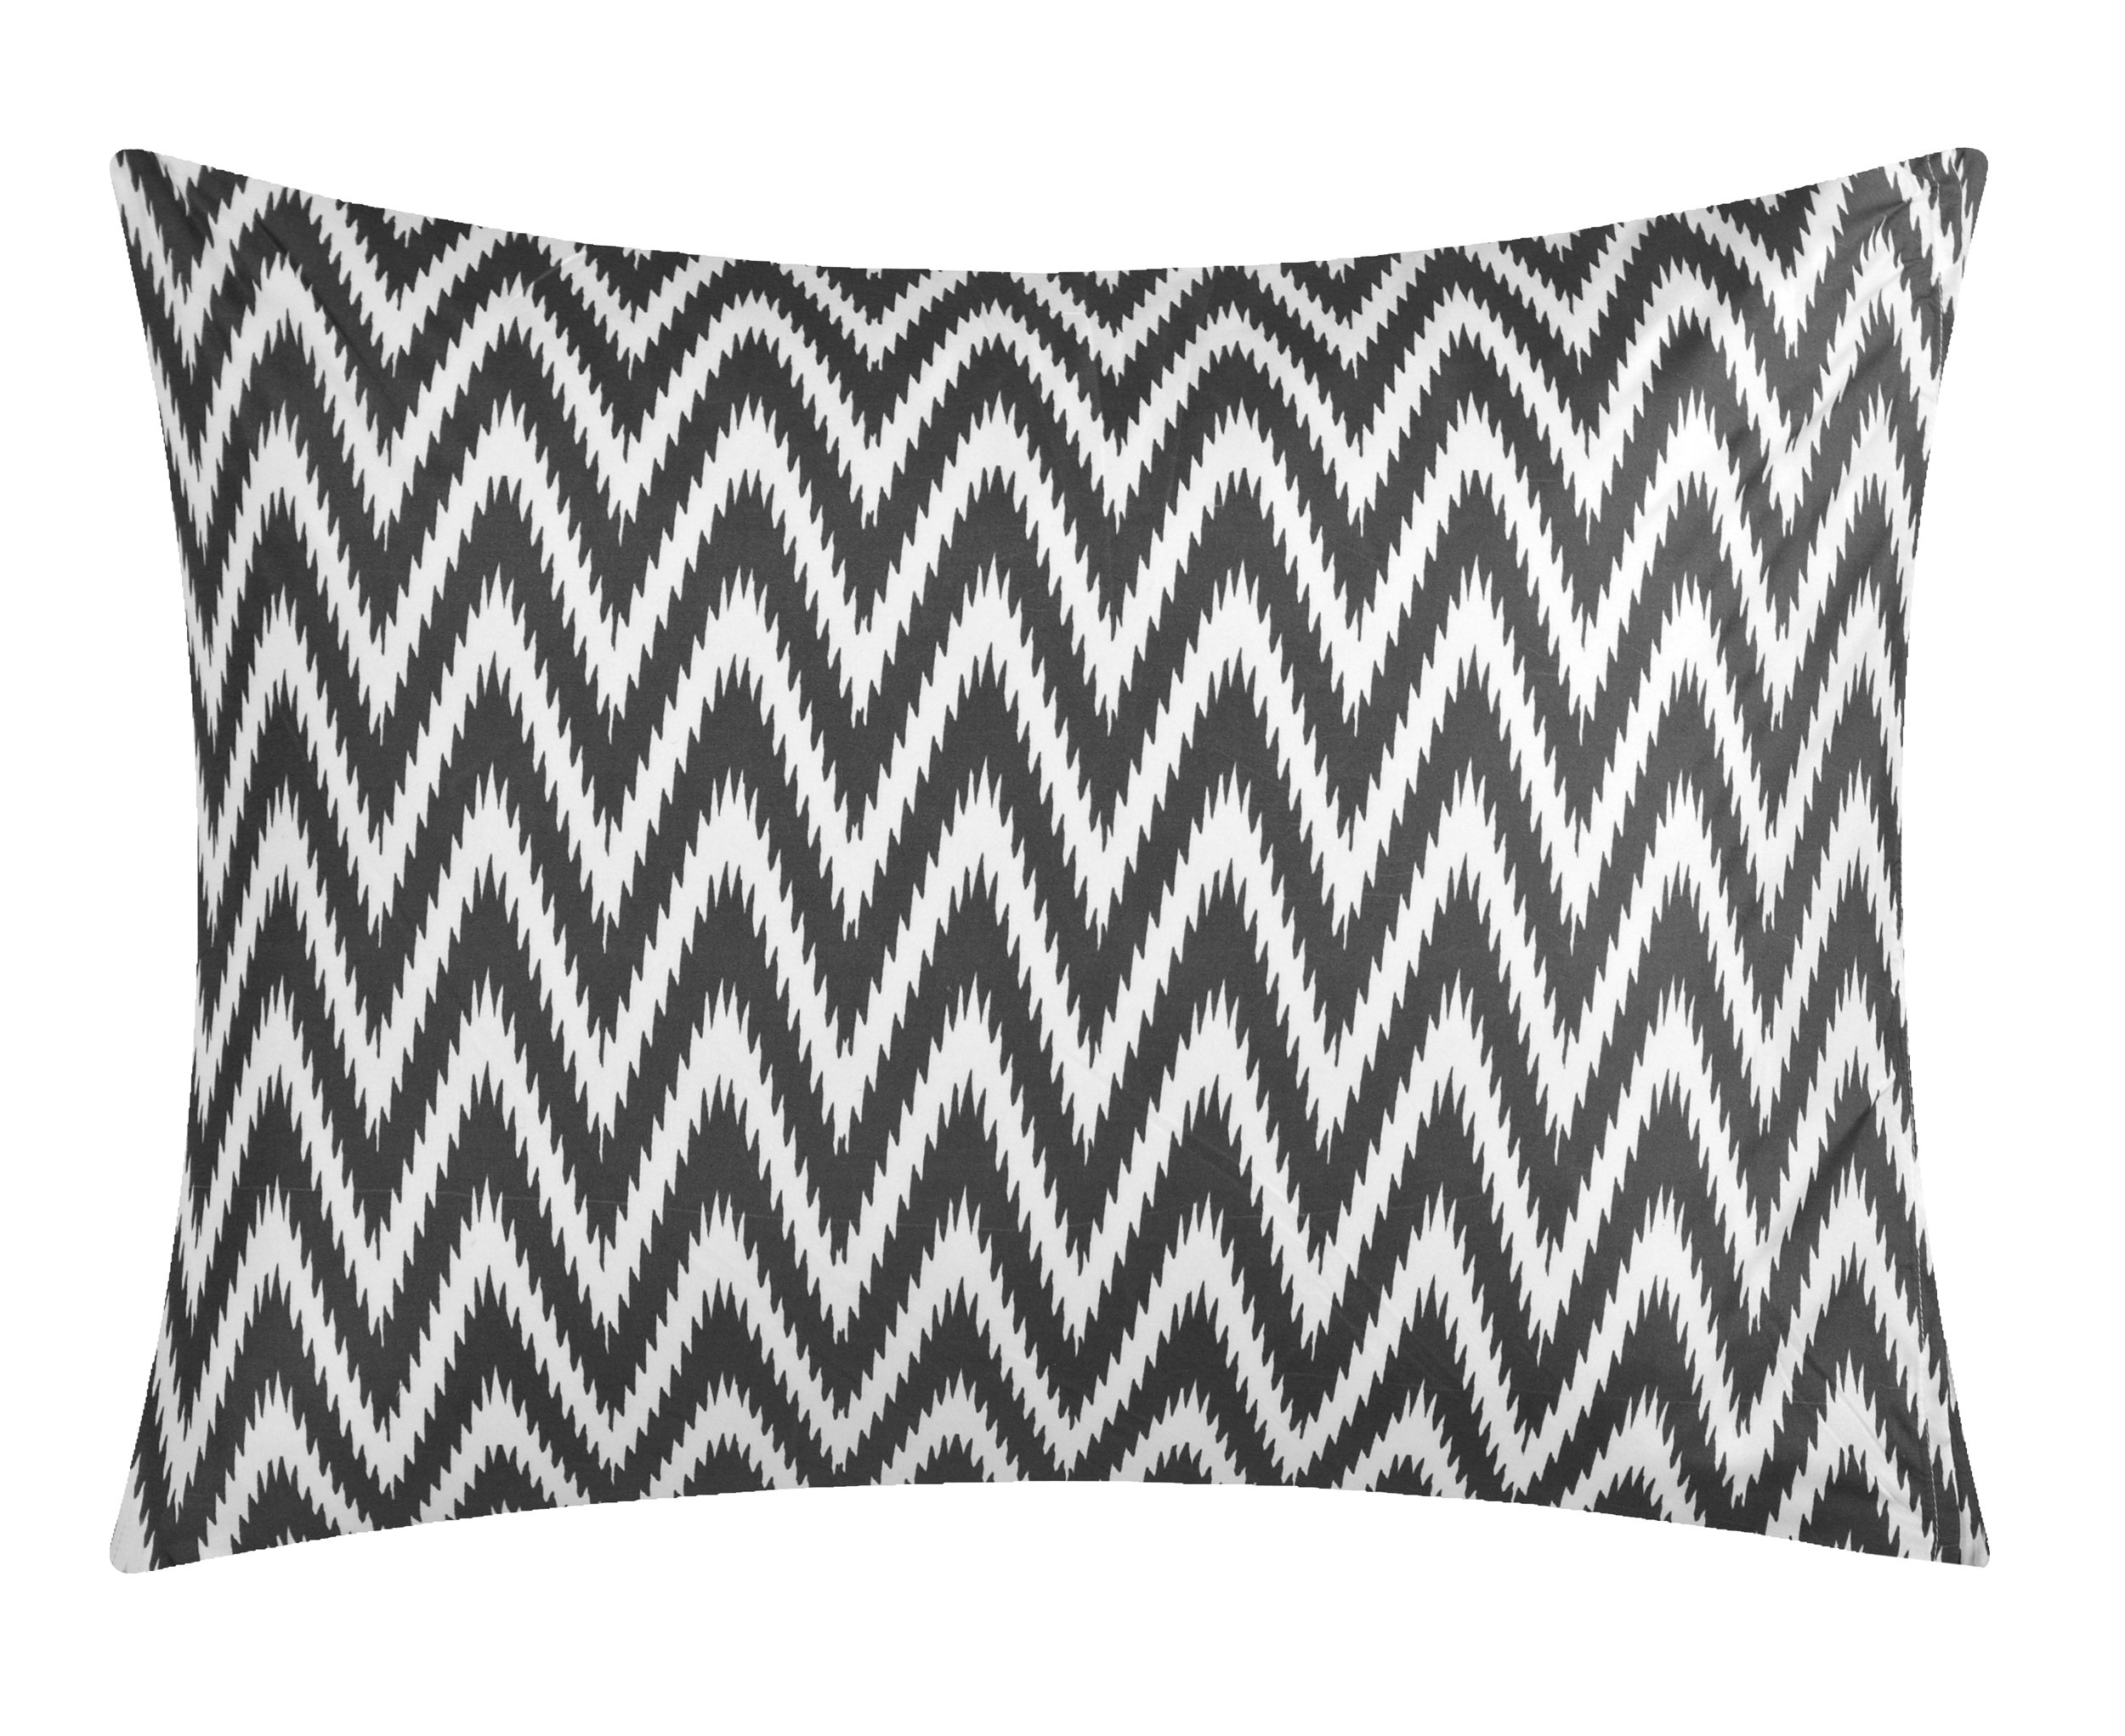 Chic Home CS0586-AN 20 Piece Jacksonville Complete Bed Room In A Bag Super Pinch Pleated Design Reversible Chevron Pattern Comforter Set, Sheet, Window Treatments And Decorative Pillows, Queen, Grey by Chic Home (Image #8)